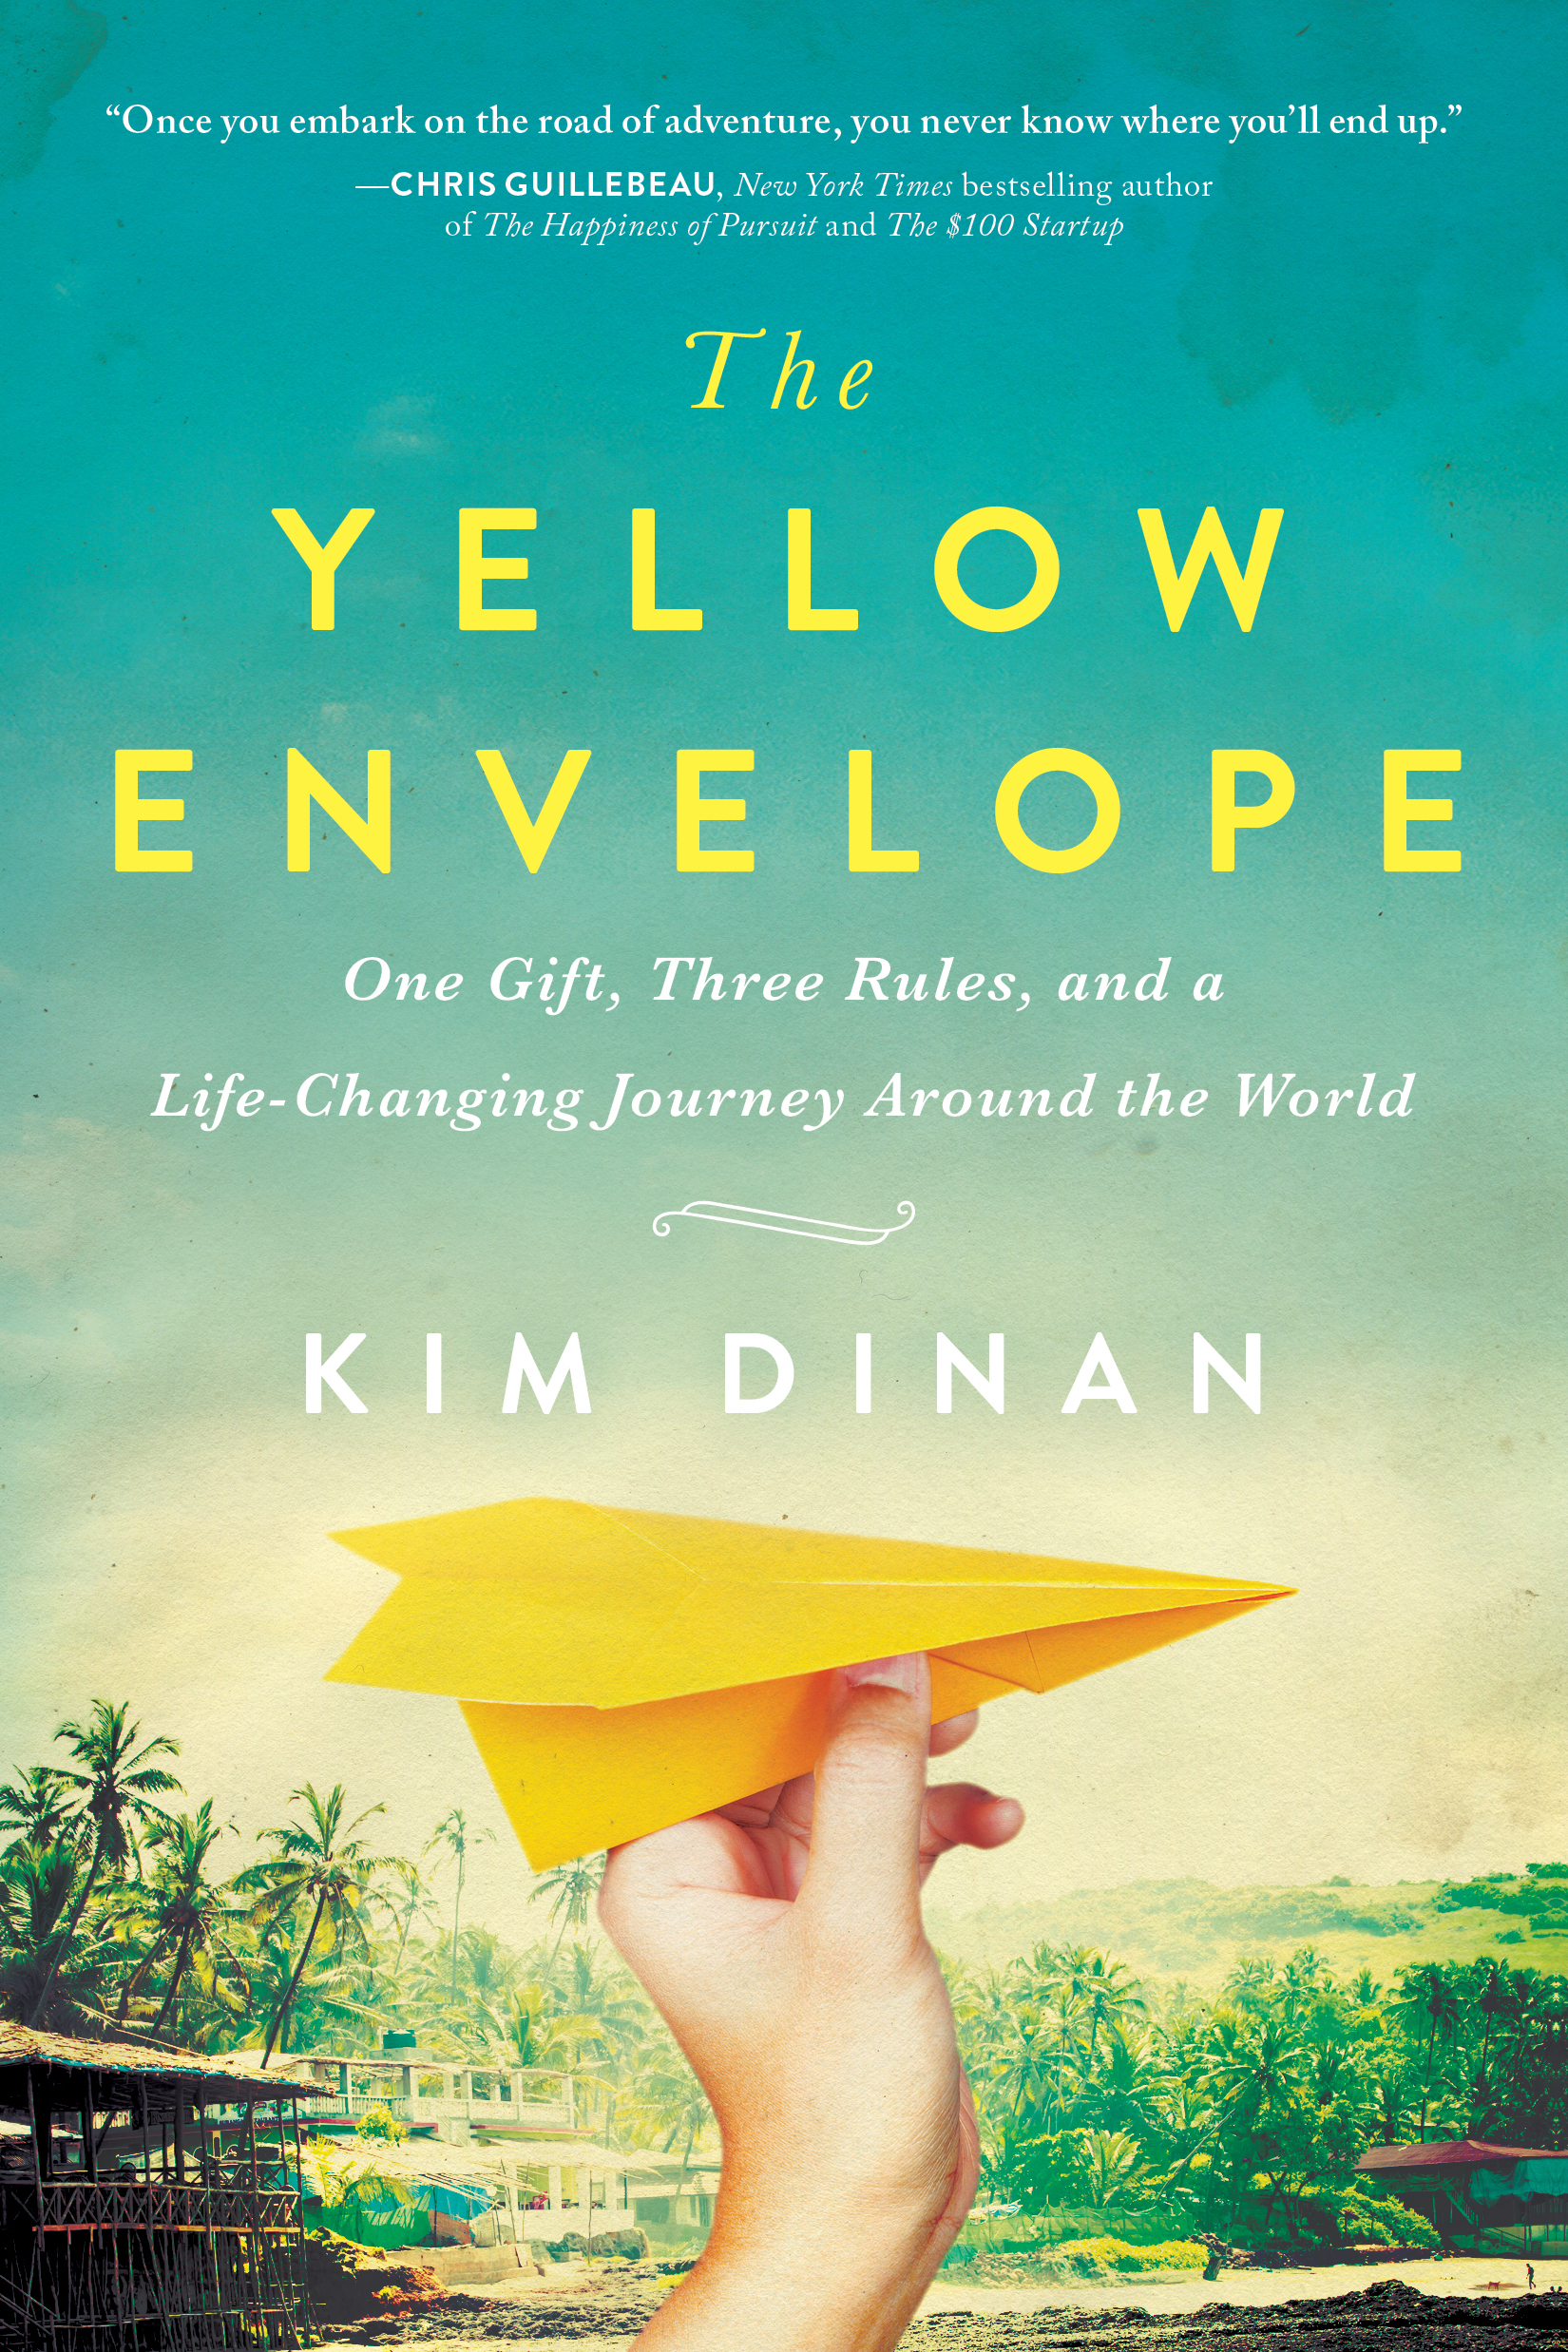 Interview with Kim Dinan of The Yellow Envelope